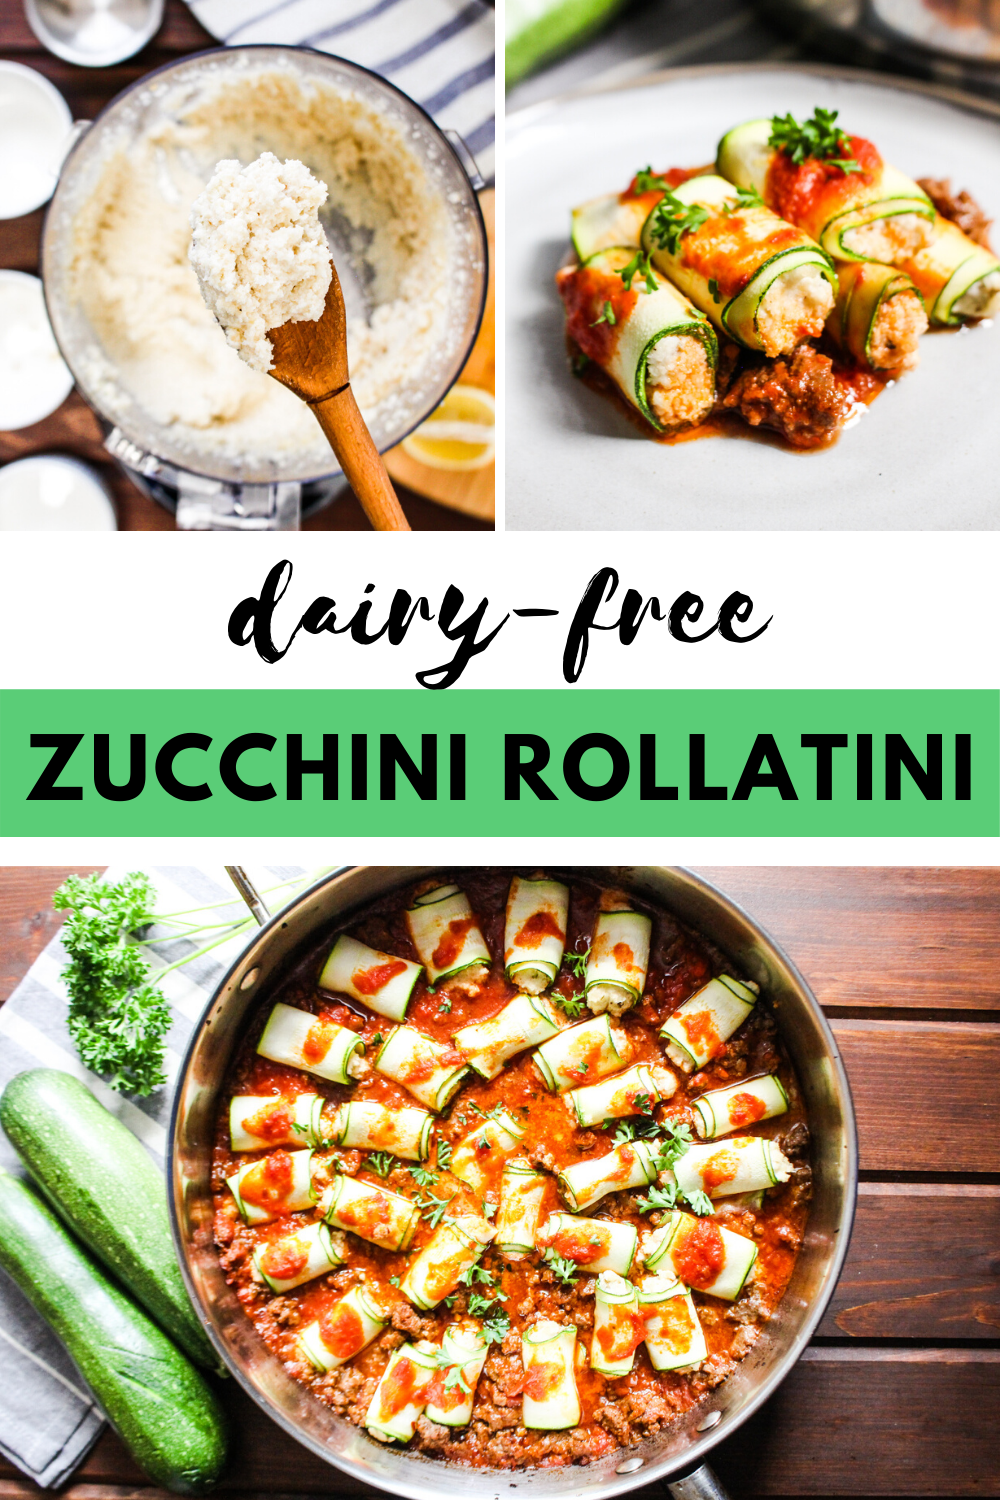 photo collage of zucchini rollatini with macadamia ricotta